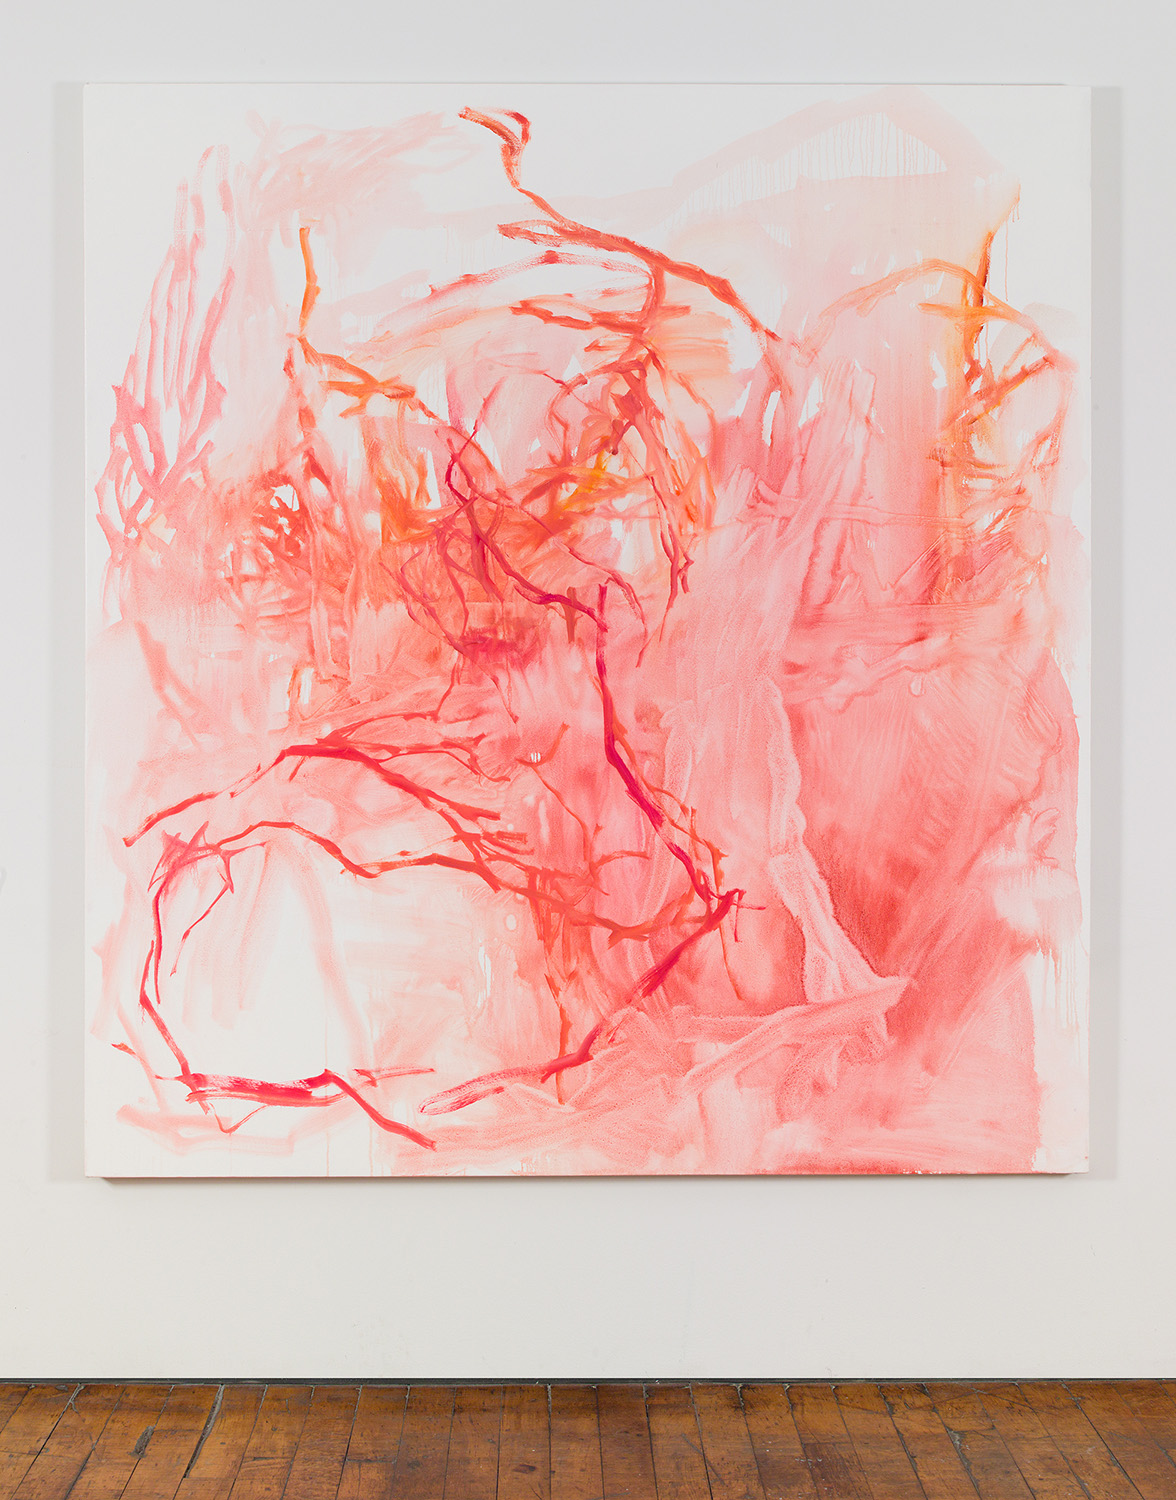 Installation view of  Clay Tendon, 76 x 70 inches, oil on canvas